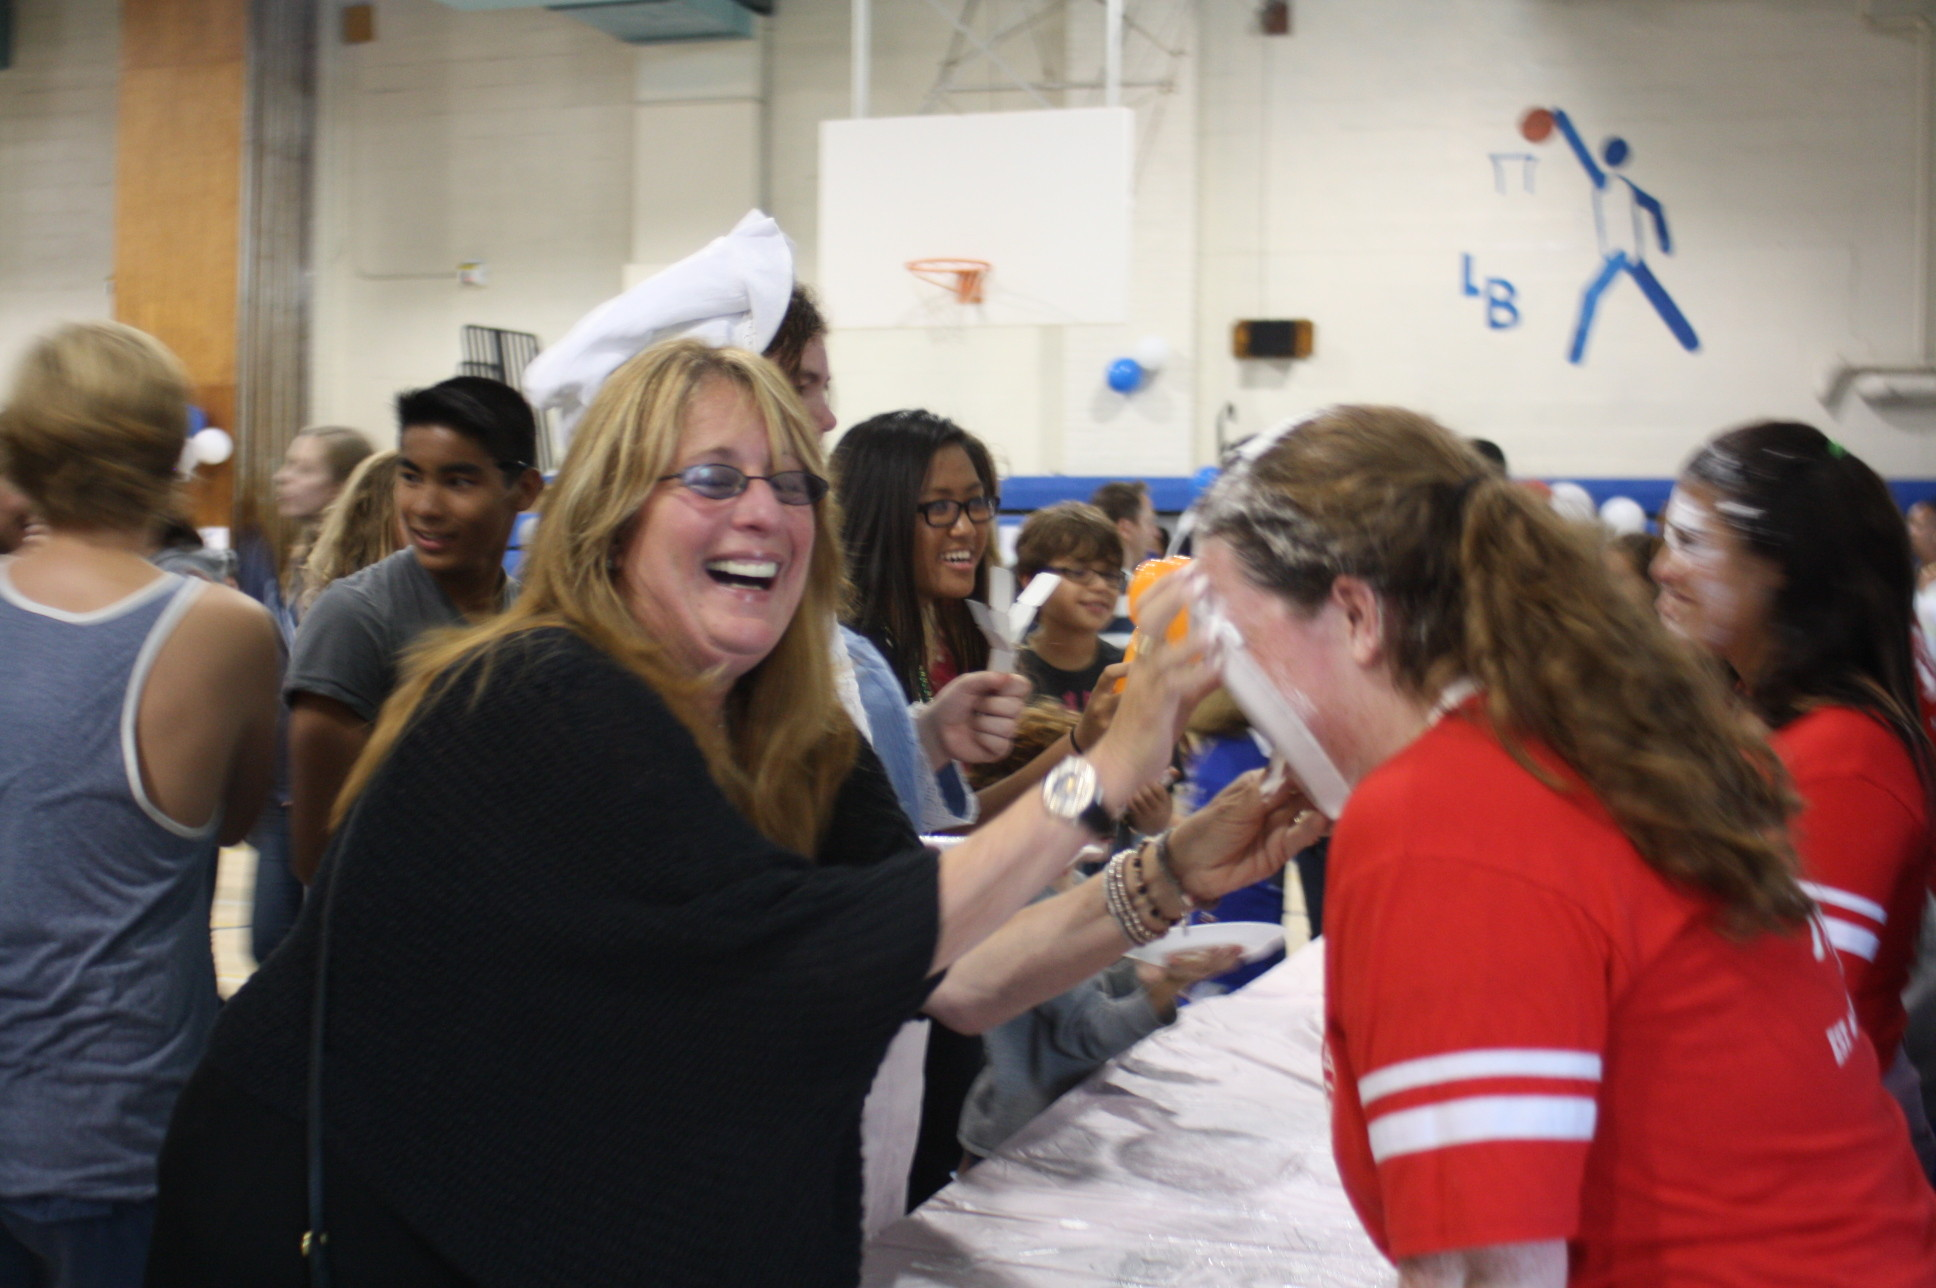 At the homecoming carnival, Debbie Goldman enjoyed smashing a pie in her daughter Allyson